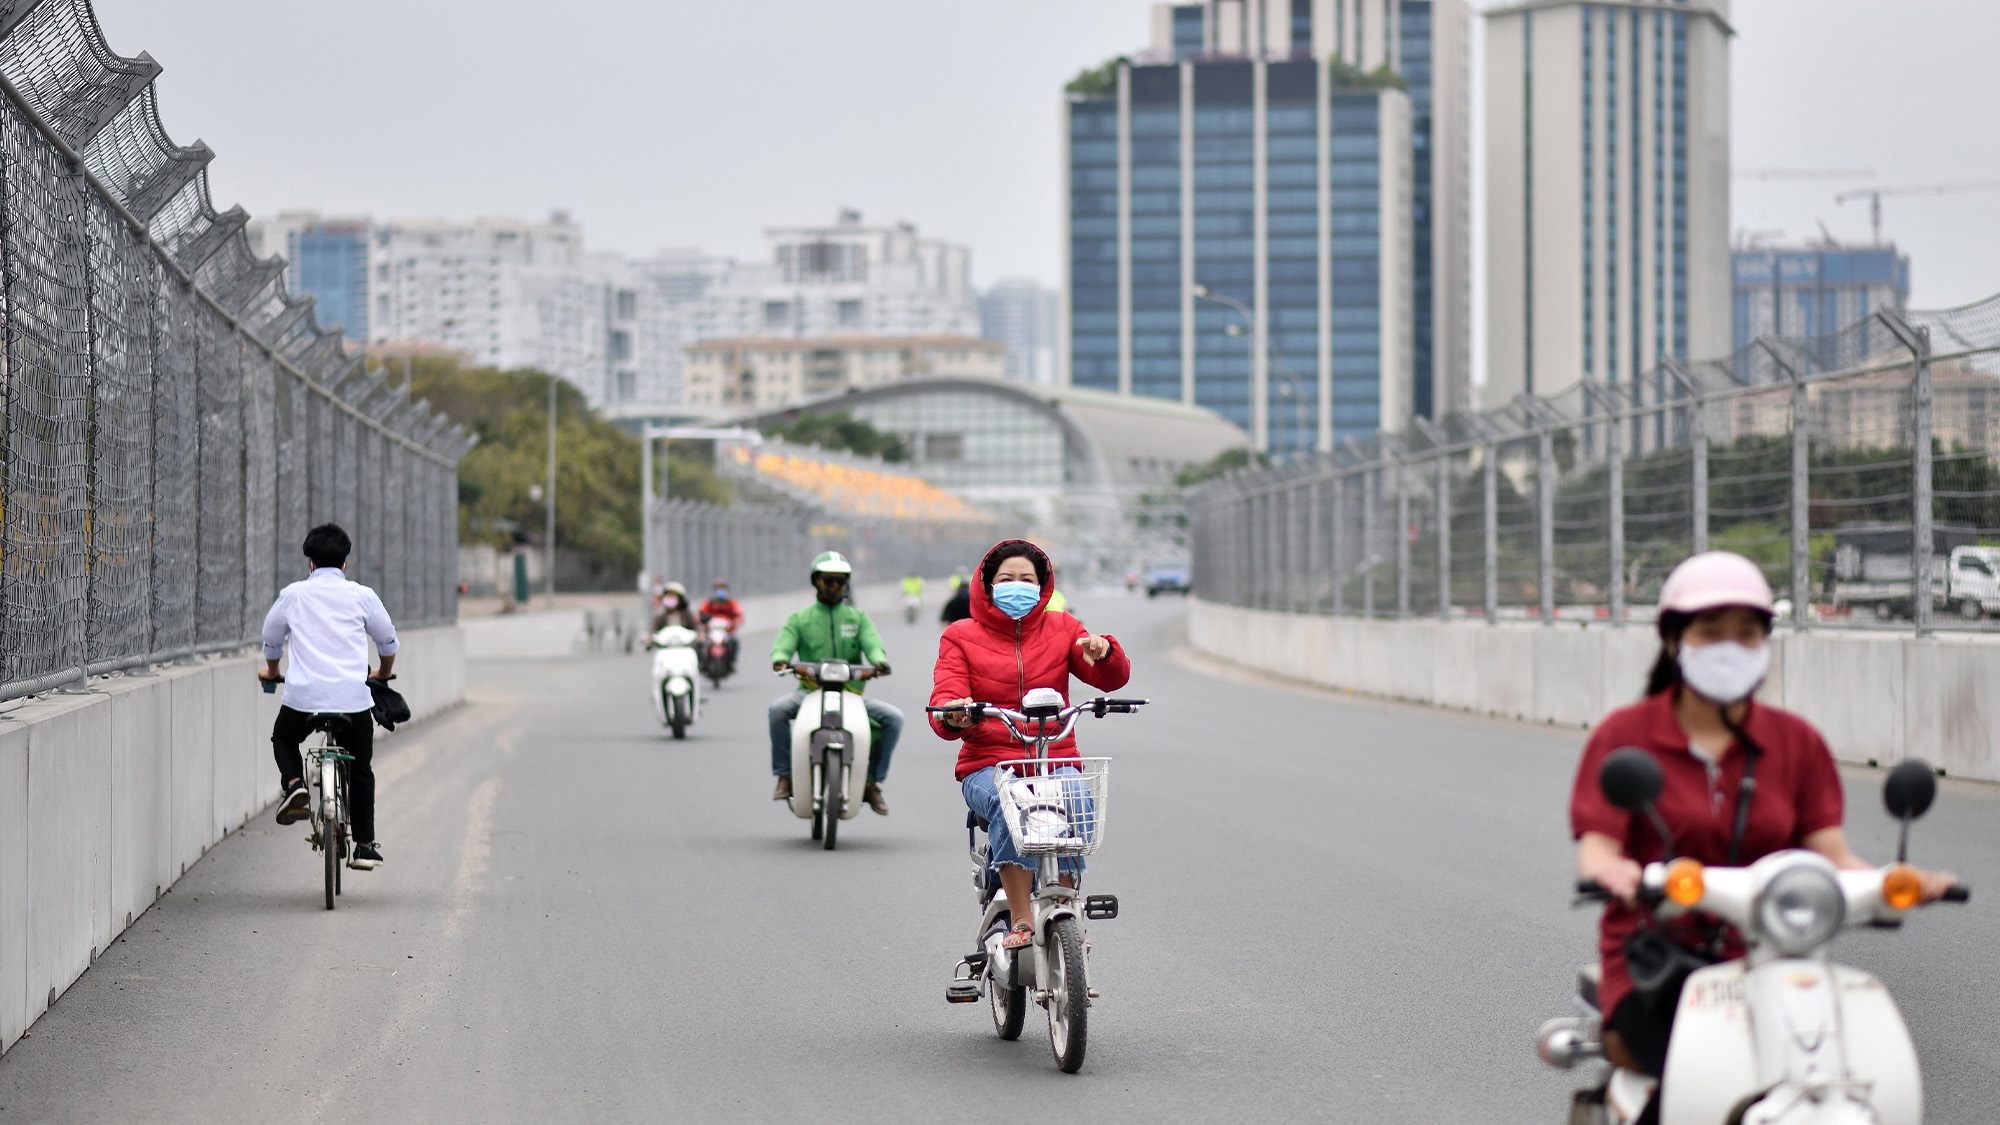 Moped and bicycle riders travel on the Hanoi Street Circuit in Vietnam